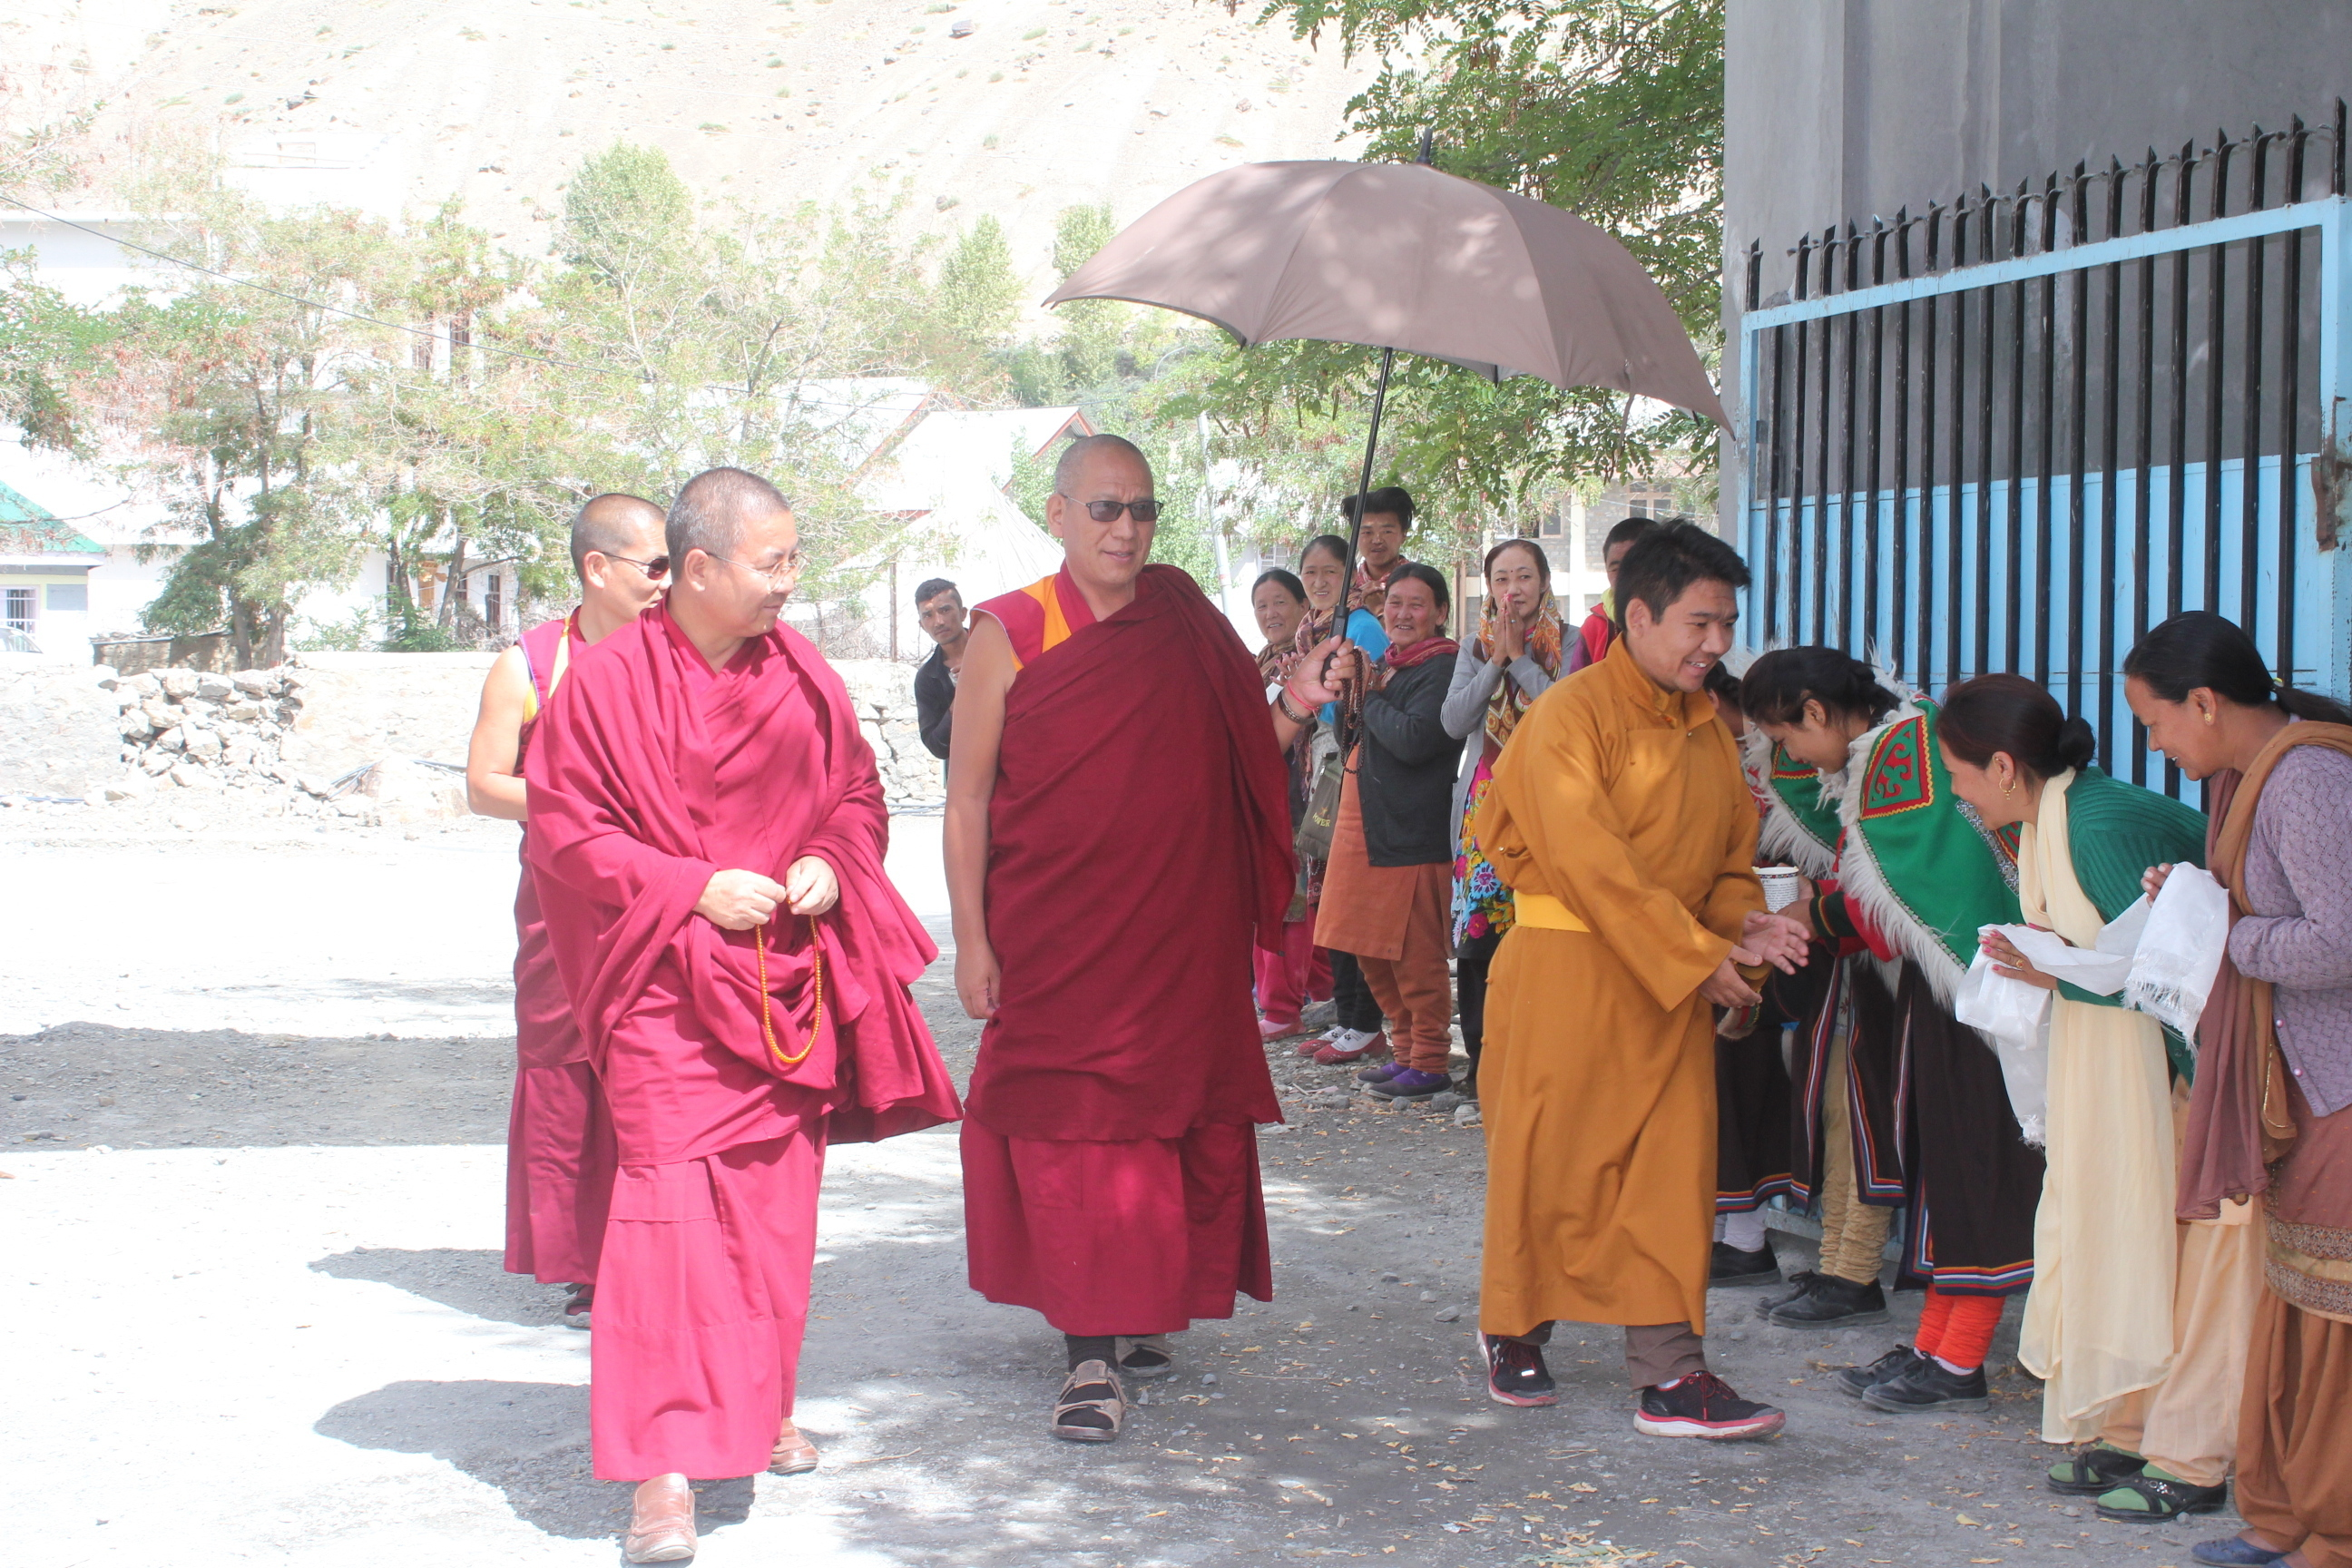 Tsenshap Serkong Rinpoche visiting Serkong School - Photo courtesy of Serkong School